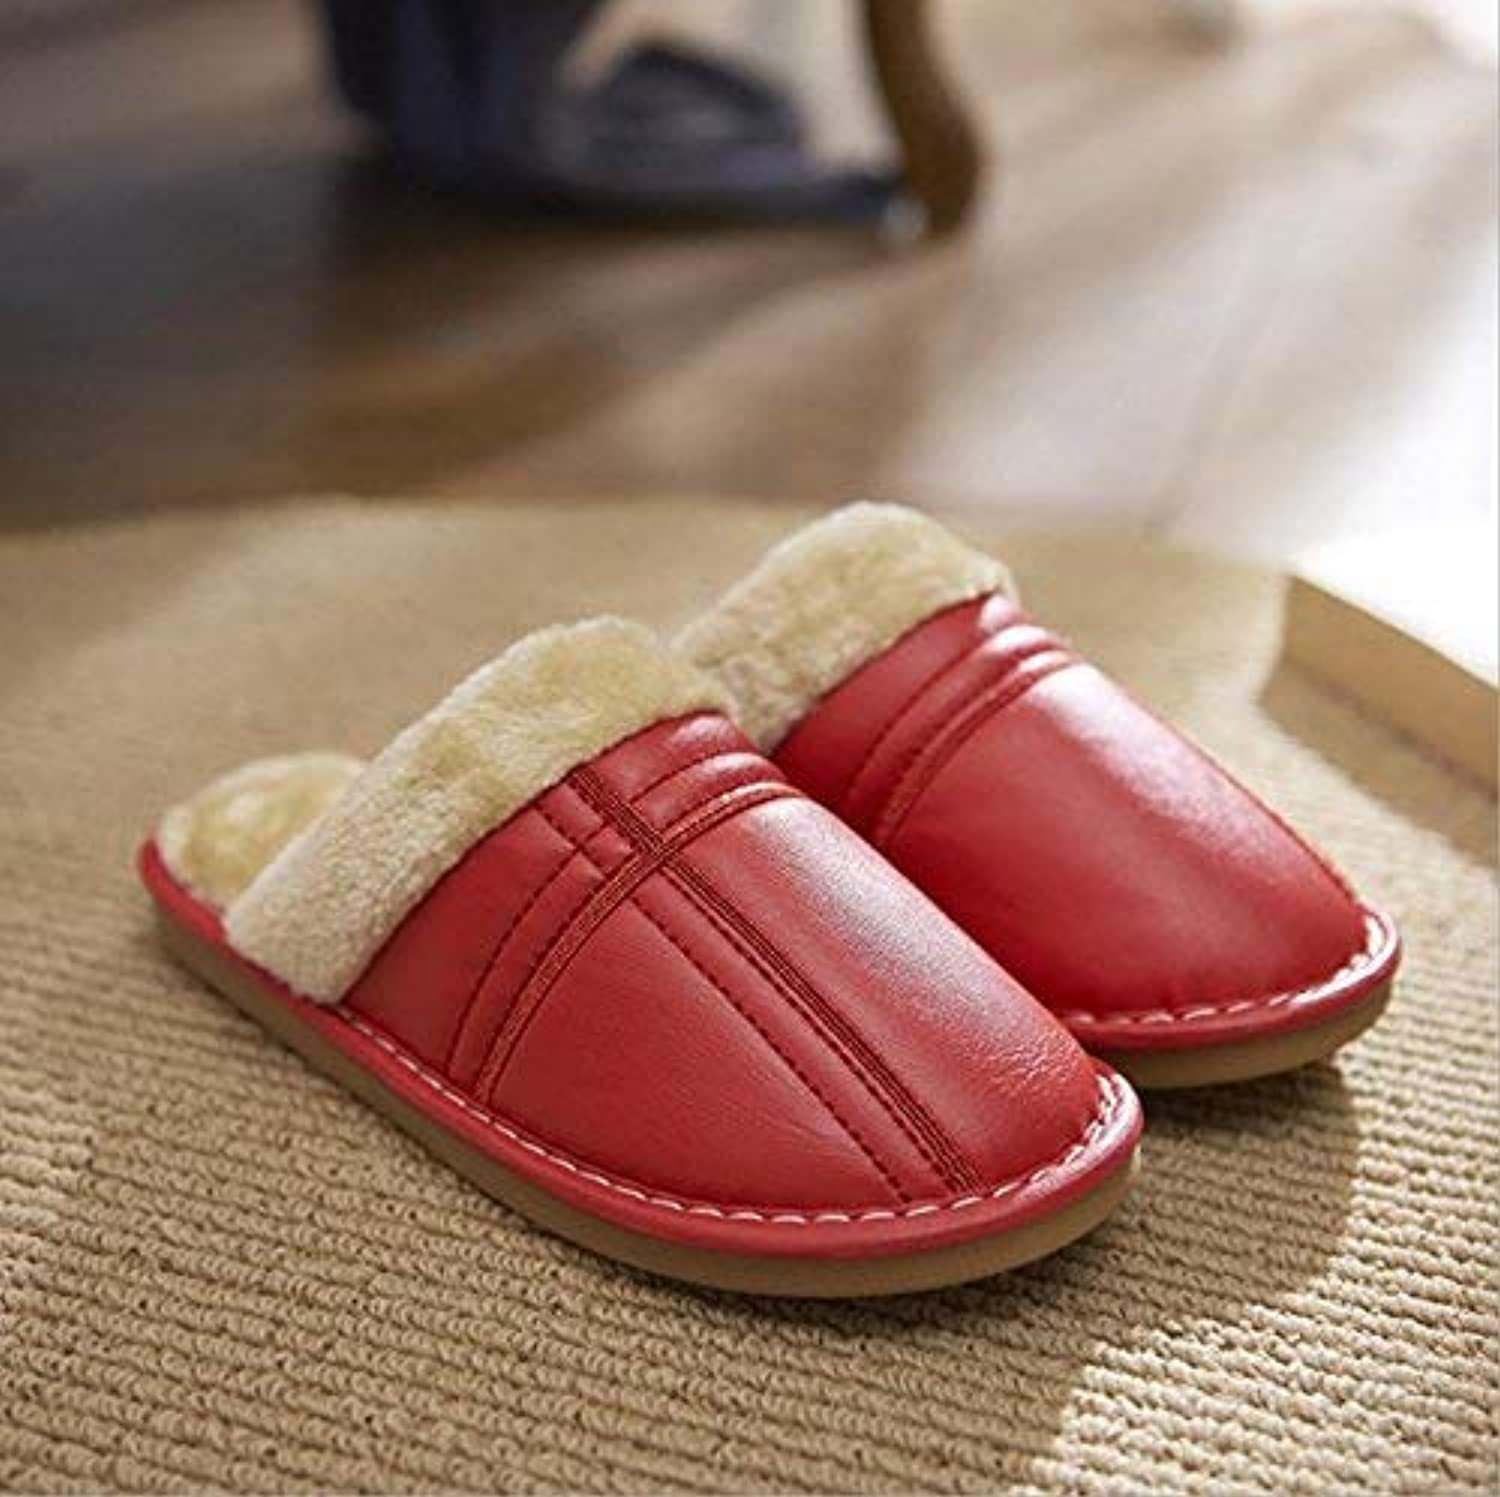 JaHGDU Ladies Thermal Slipper Casual Faux-Leather Slippers Large Size Super Soft Plush Home Indoor Wear-Resistant Classic Slippers